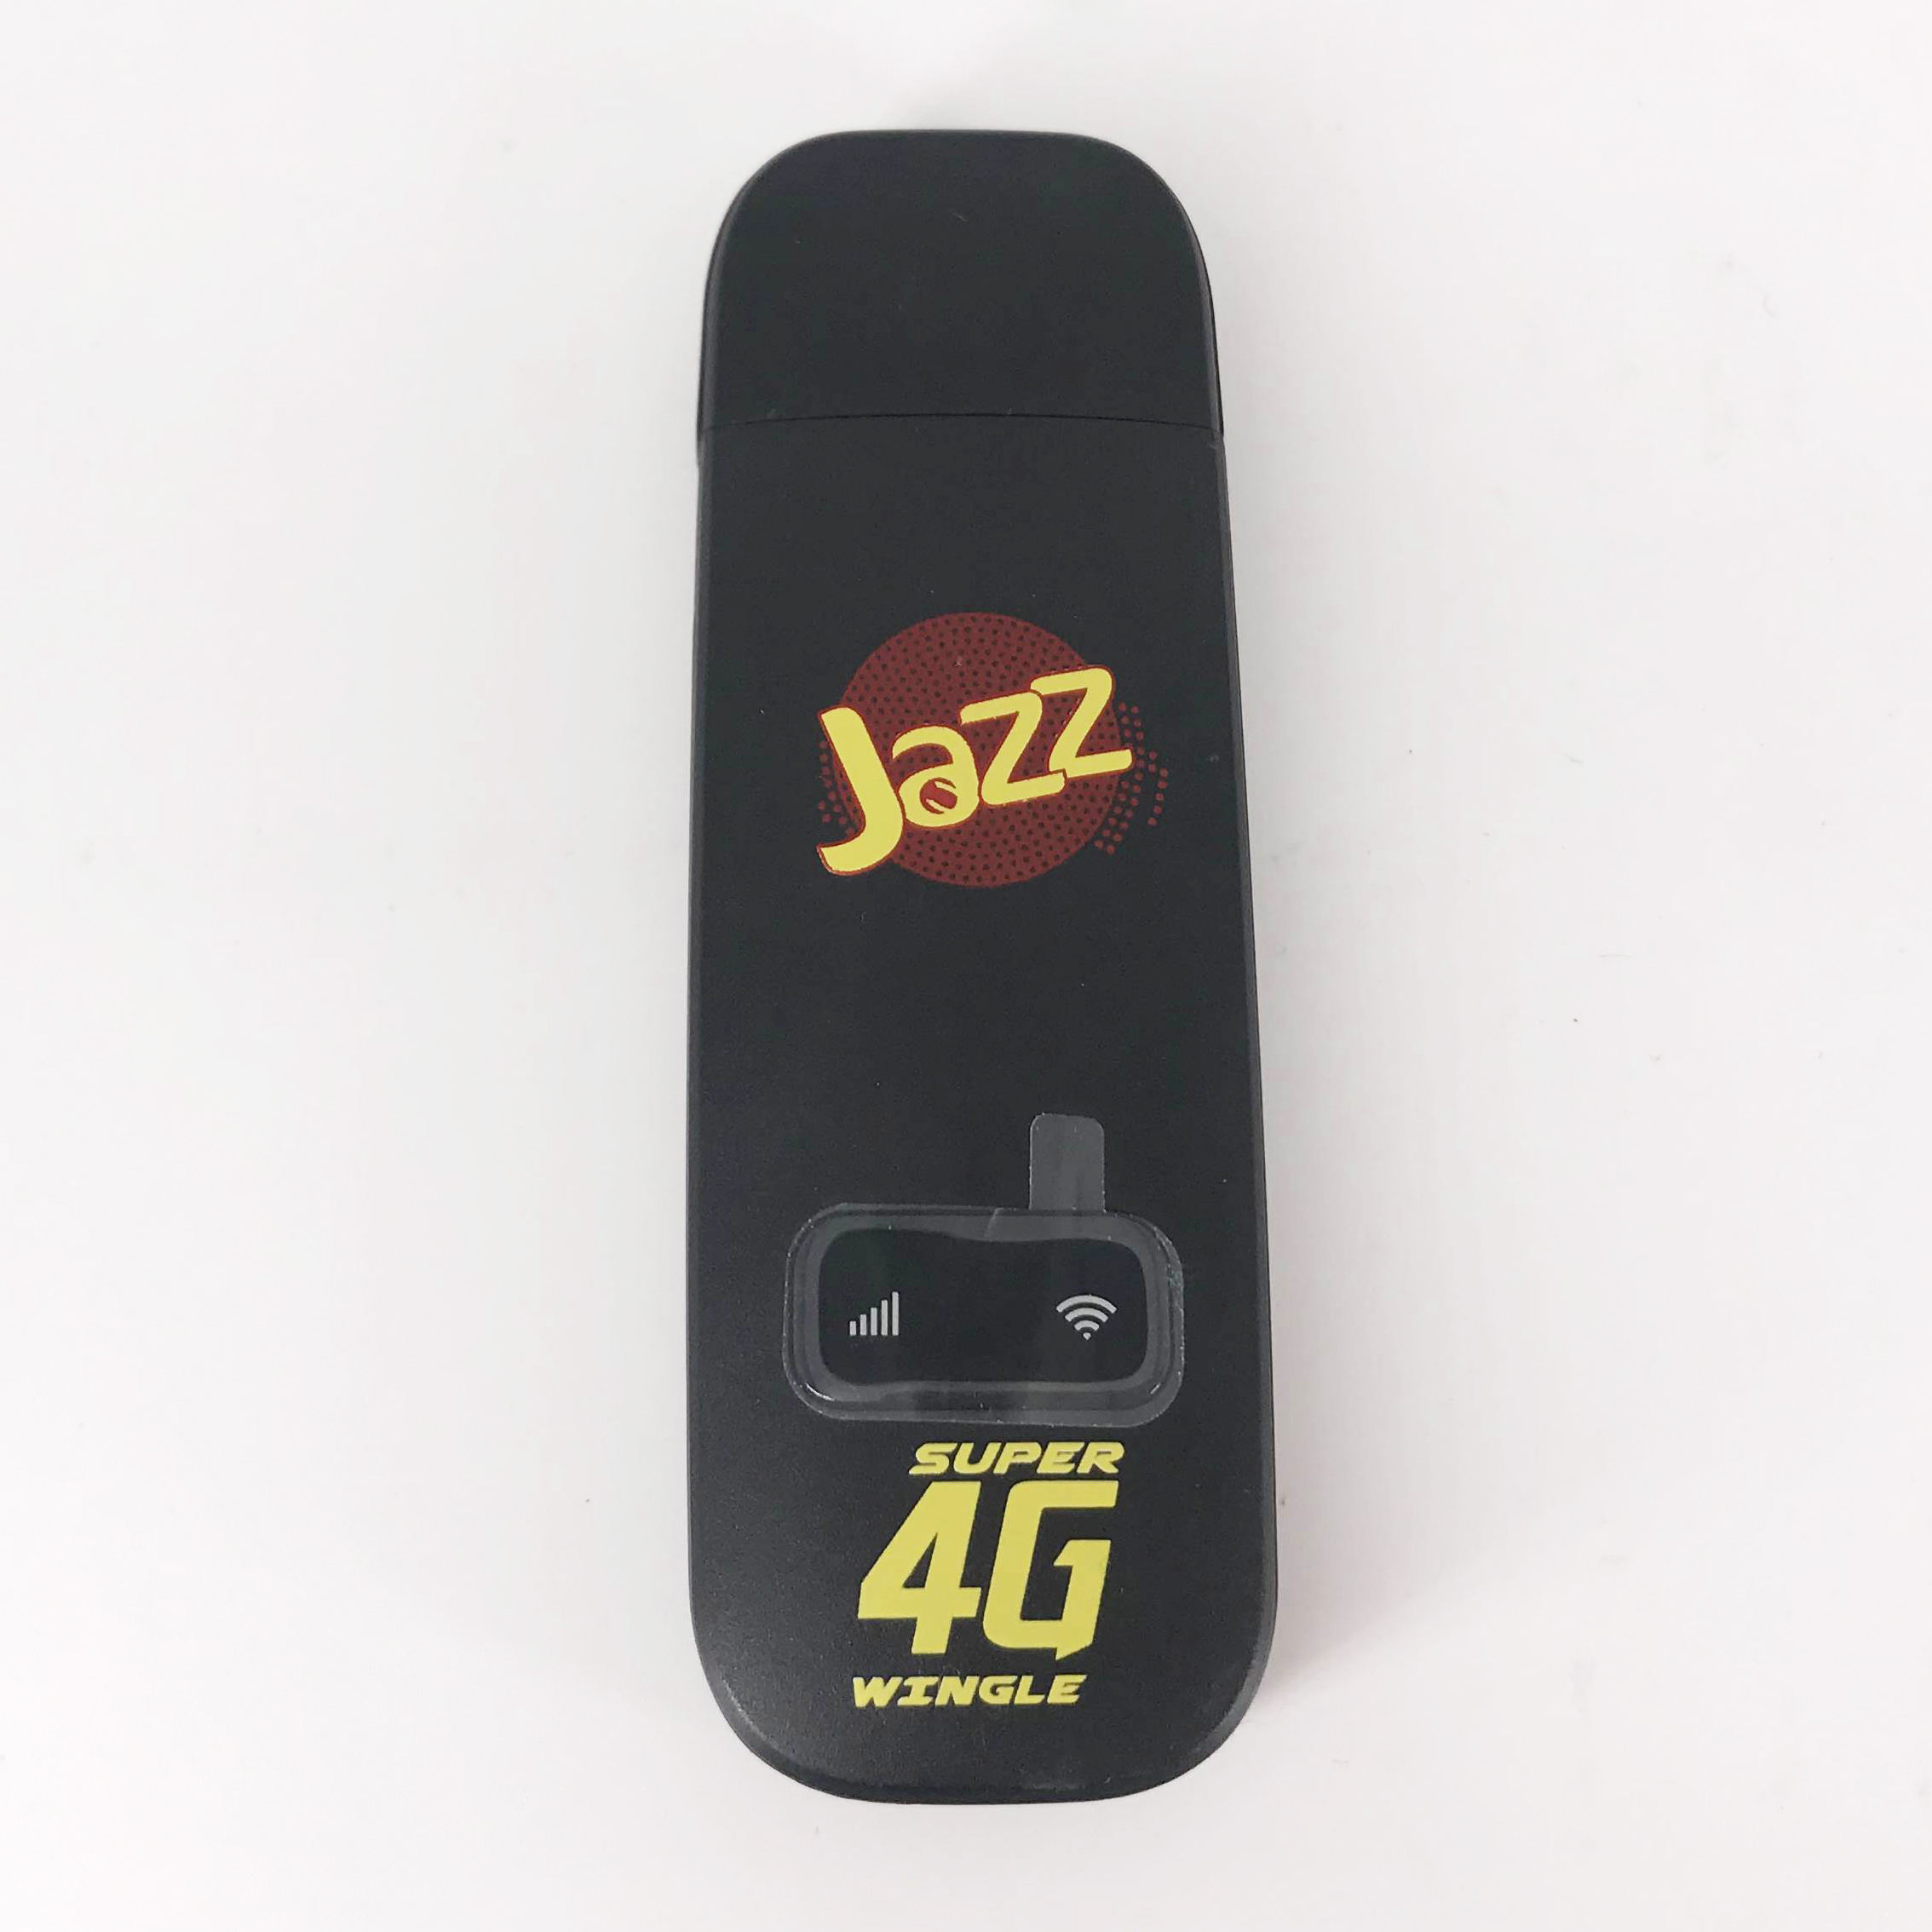 Vendita calda 4g Lte <span class=keywords><strong>Wifi</strong></span> <span class=keywords><strong>Modem</strong></span> Dongle Router Jazz W02-LW43 Wingle con Slot Per Sim Card